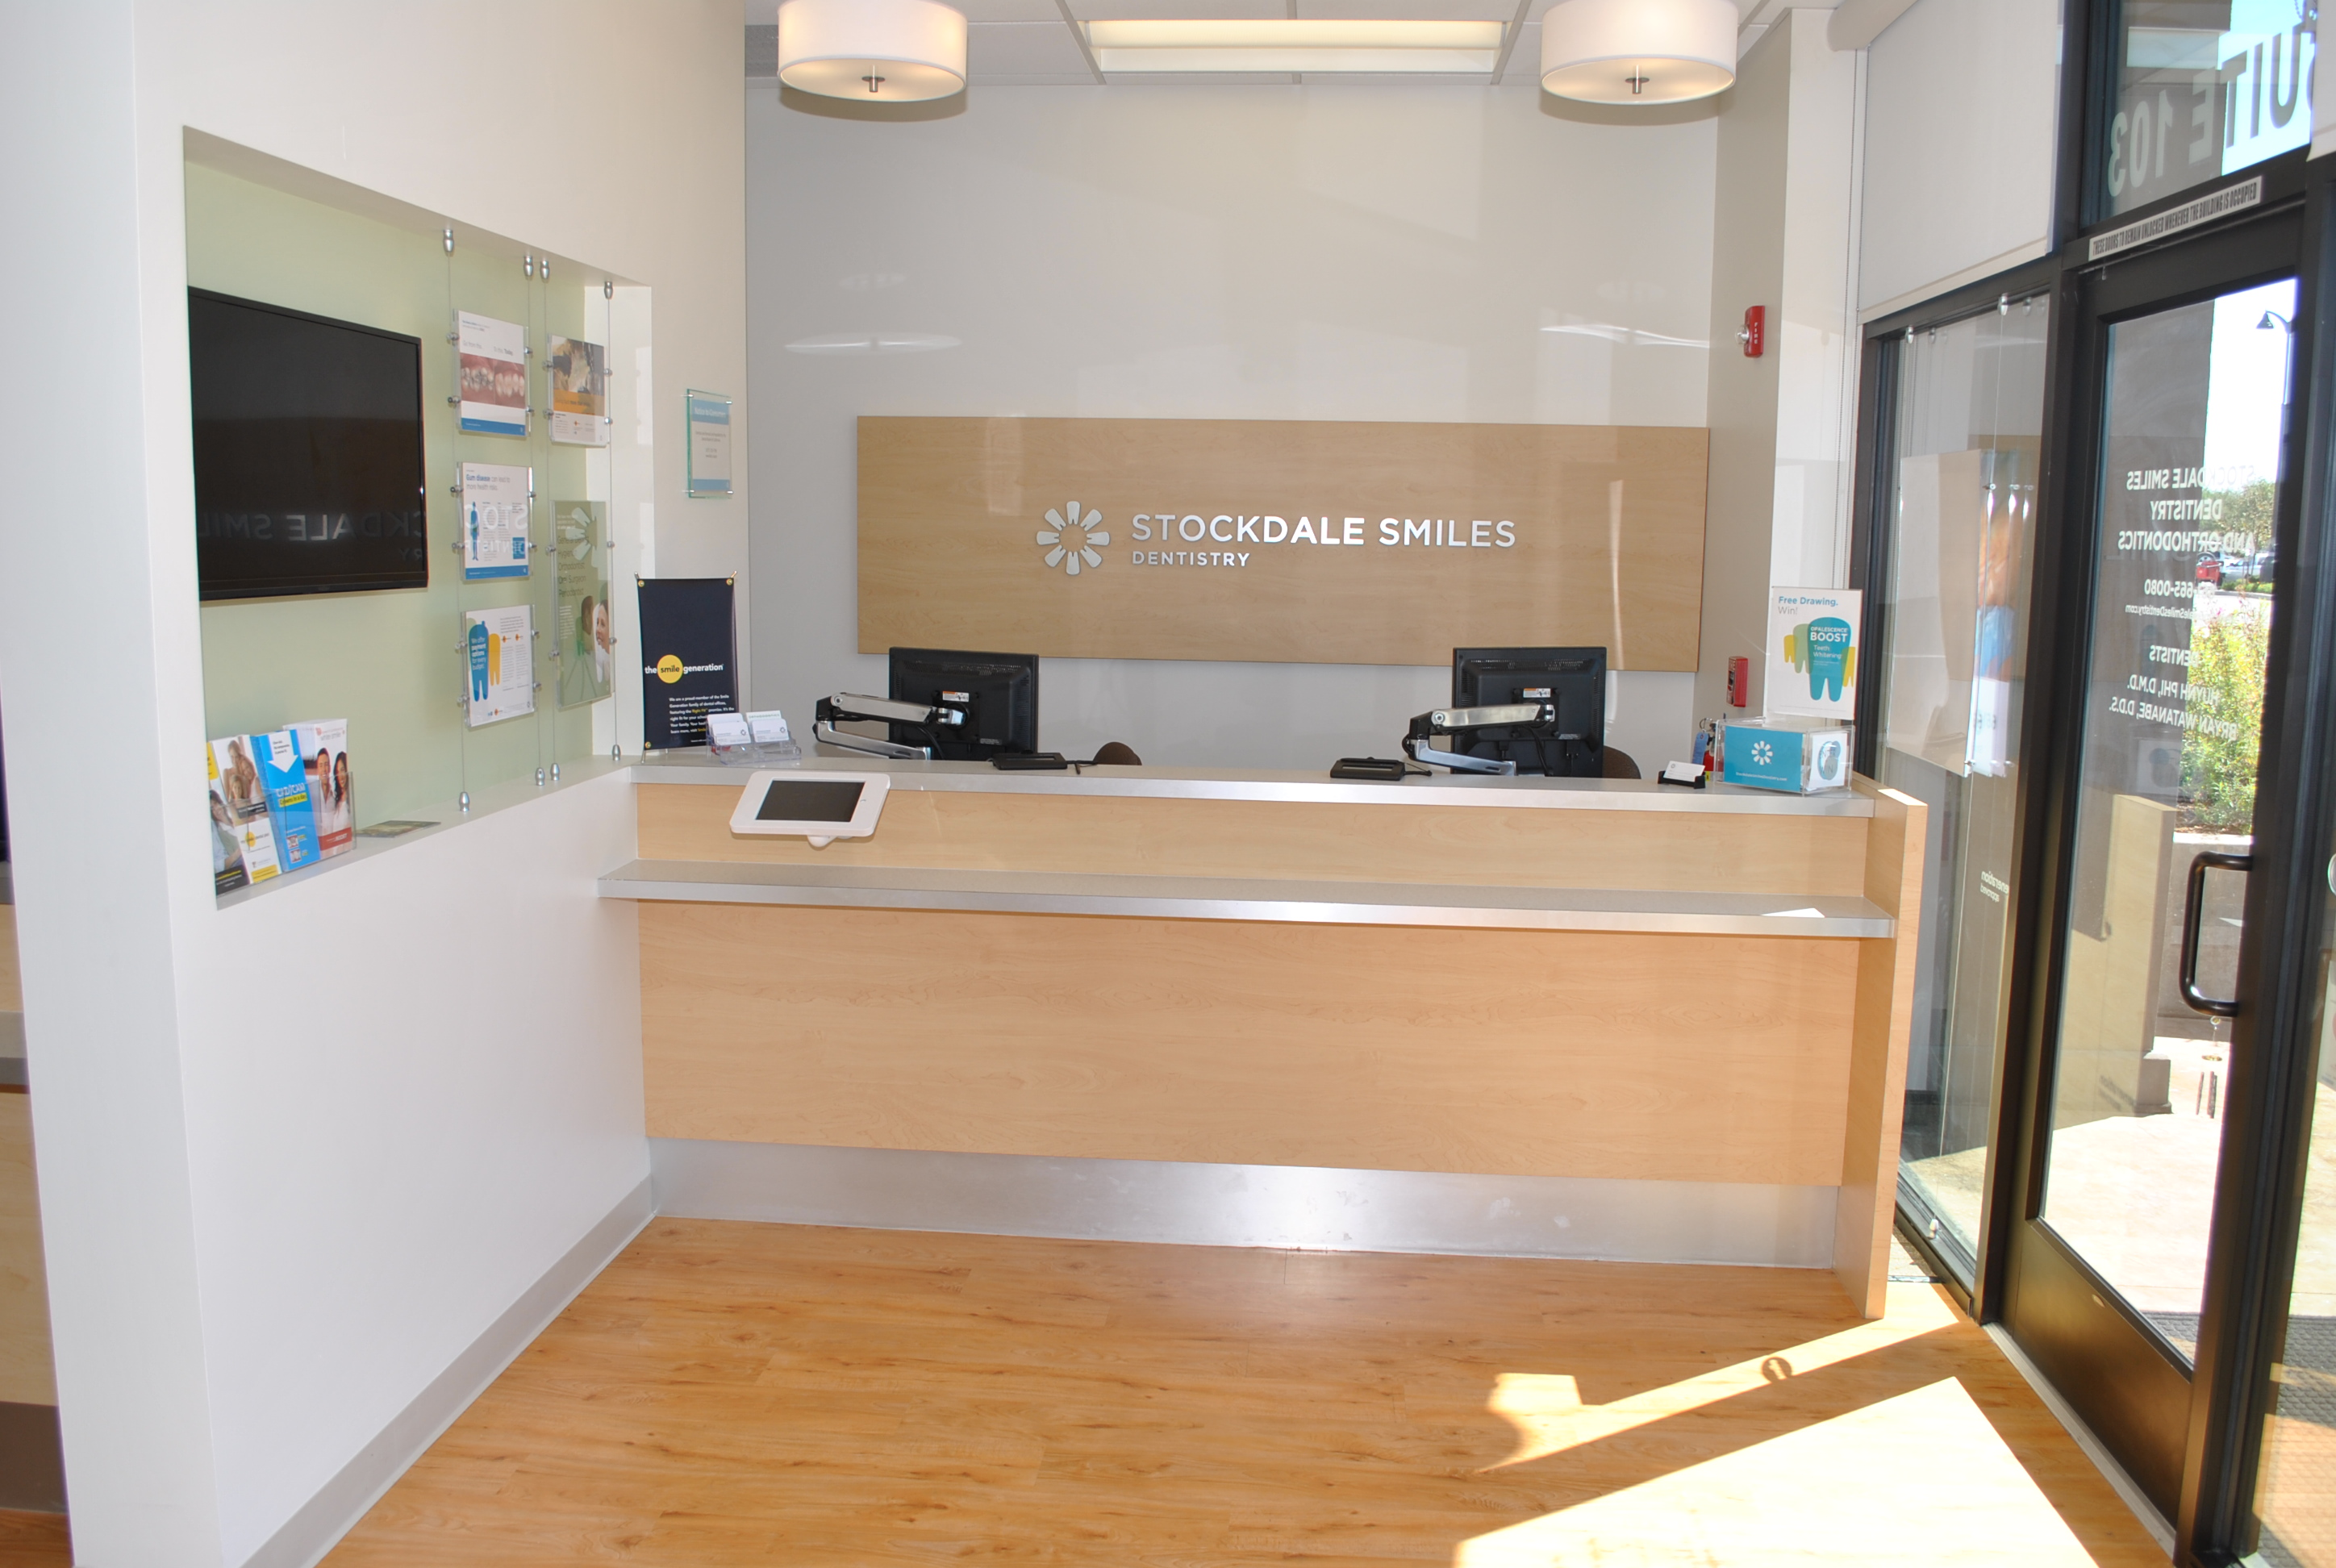 Stockdale Smiles Dentistry and Orthodontics image 2